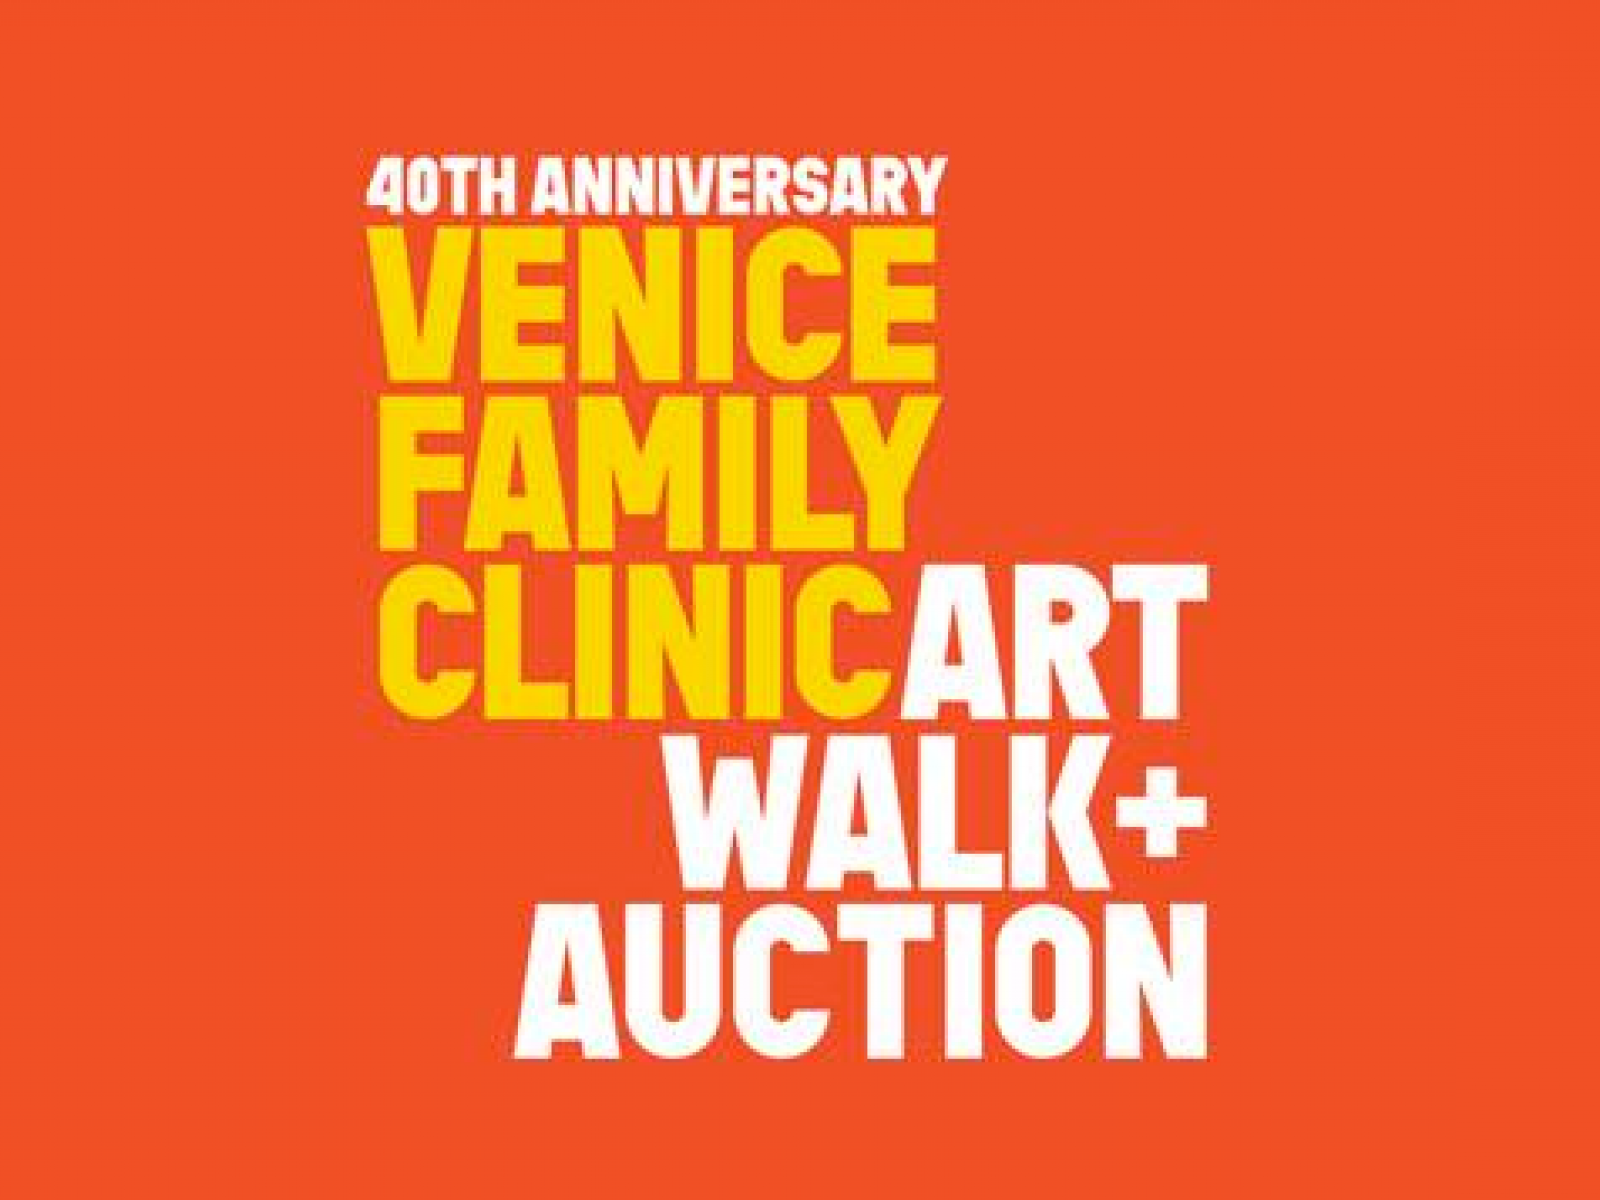 Main image for event titled Venice Family Clinic Art Walk & Auction